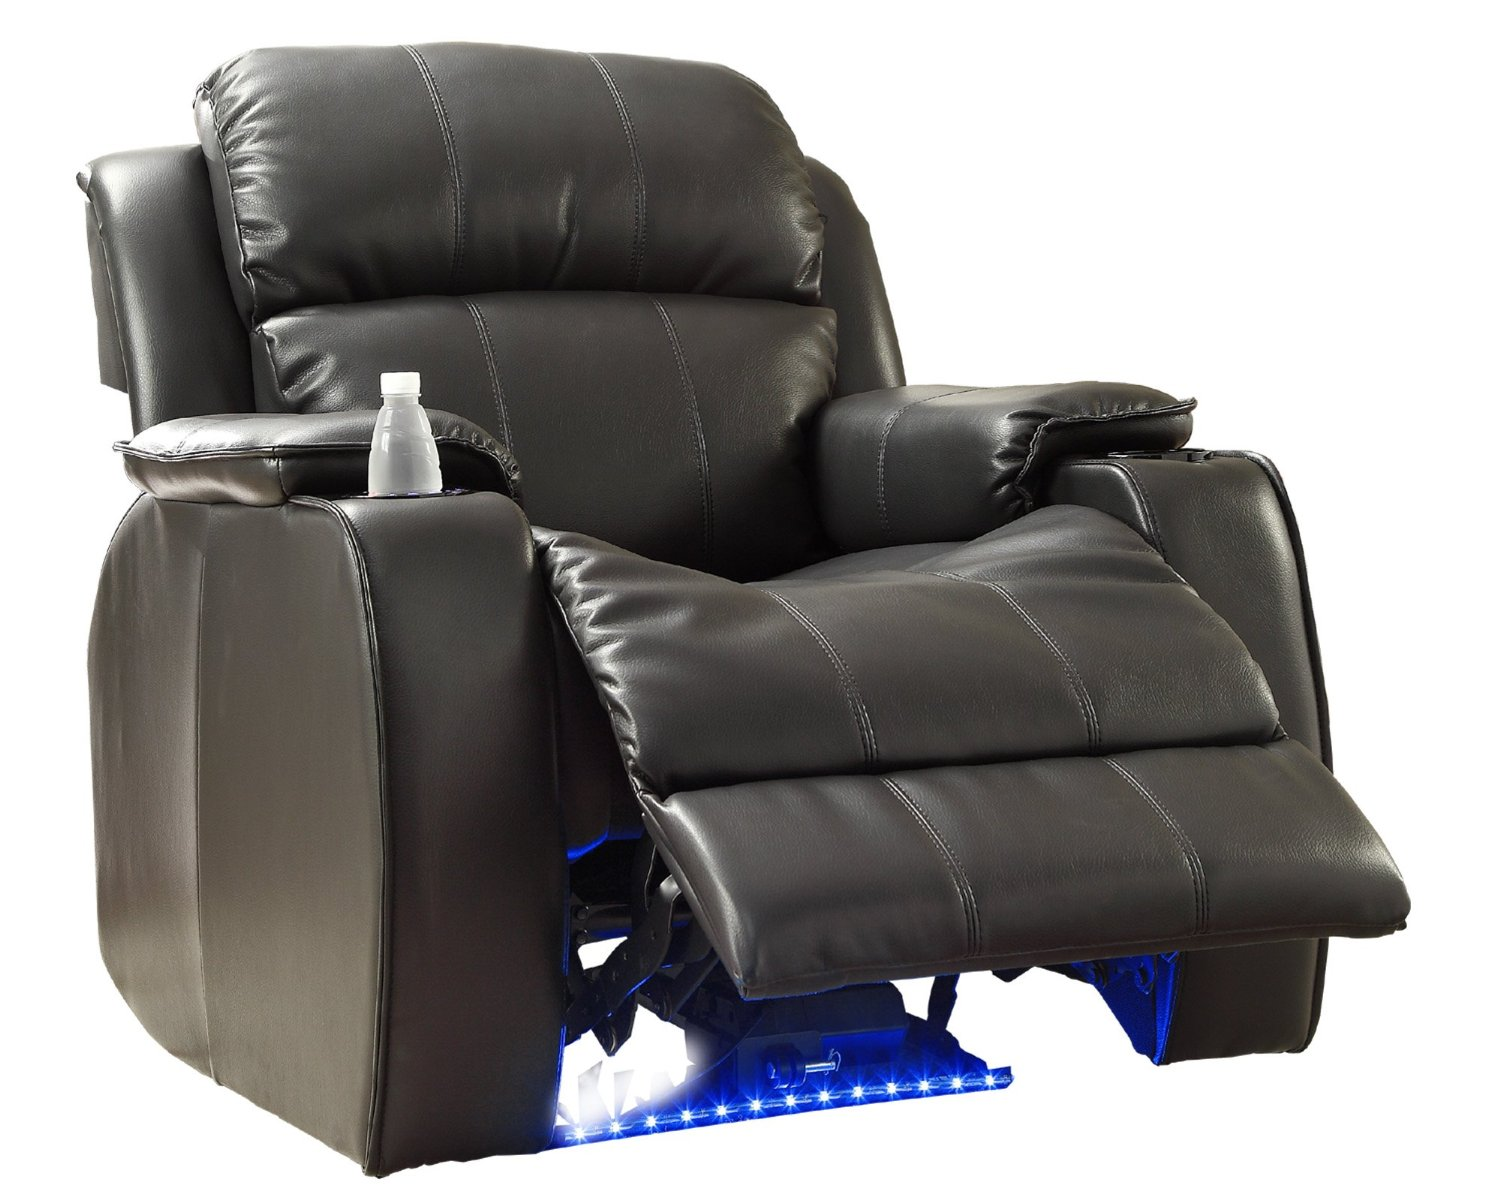 Top 3 Best Quality Recliners with Coolers